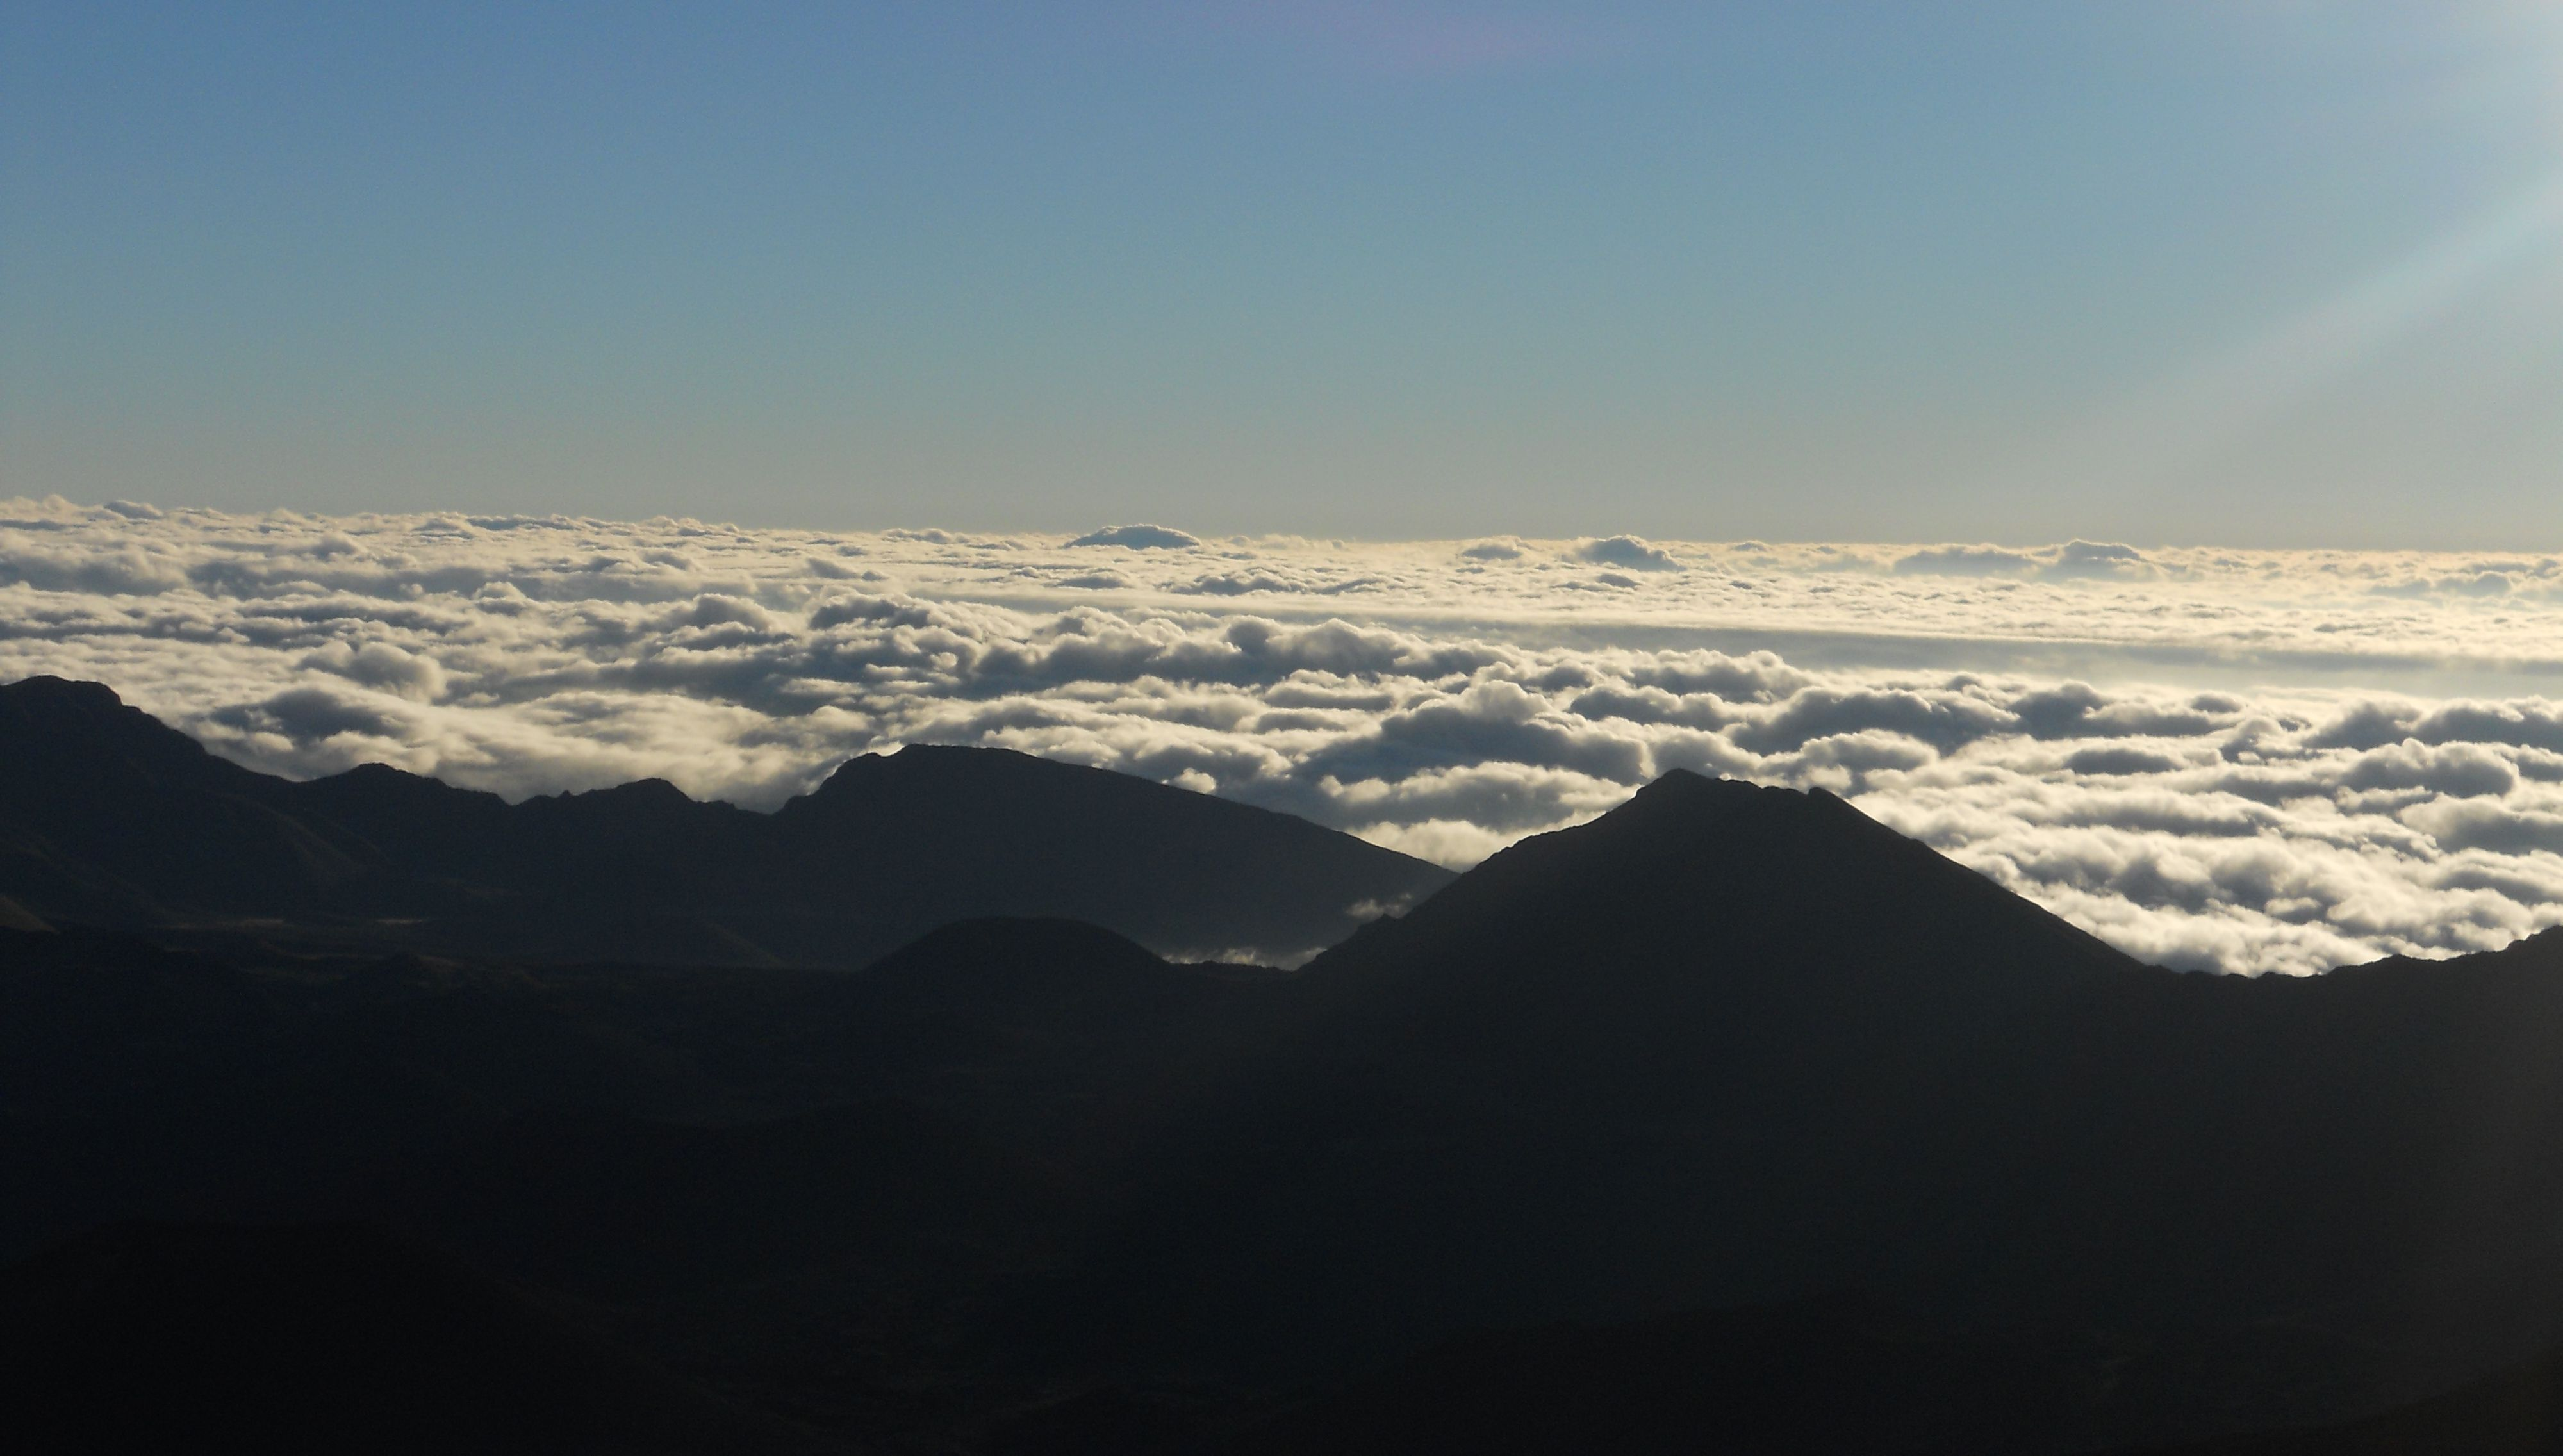 The Stay Puft Marshmallow Man was forged by the gods in the clouds of Haleakalā.